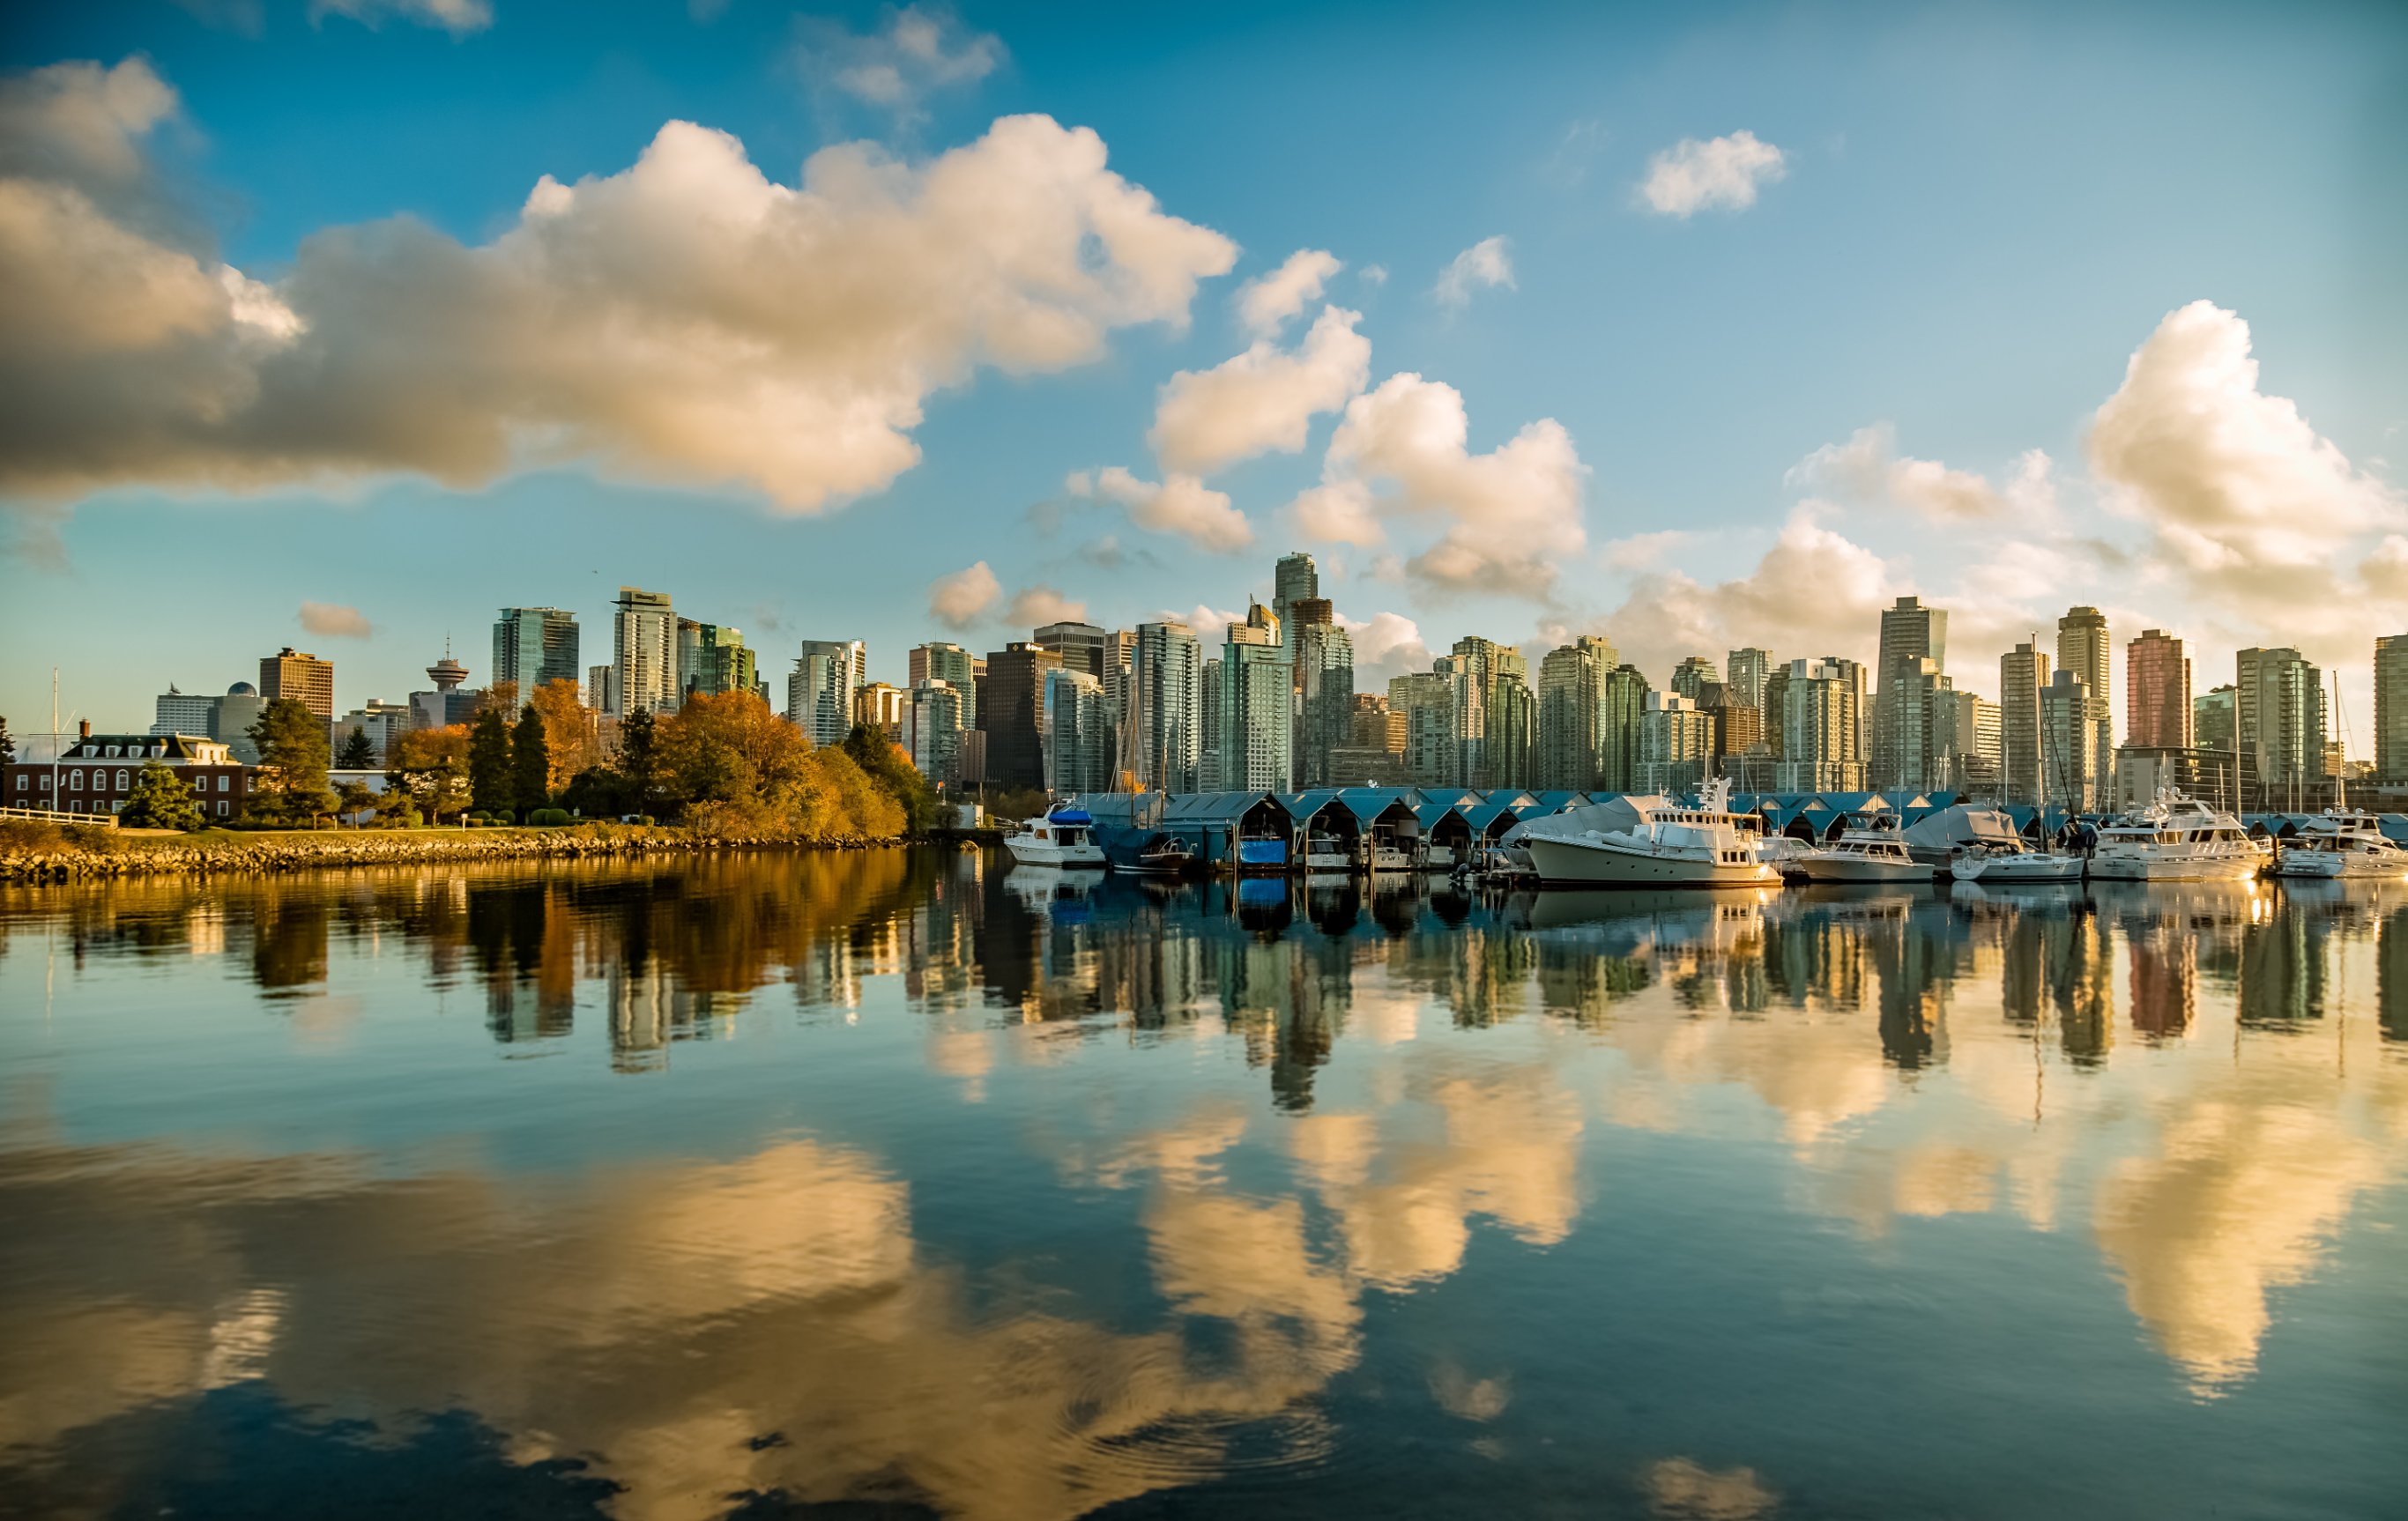 7-Day Taste of West Canada - Canada Itinerary